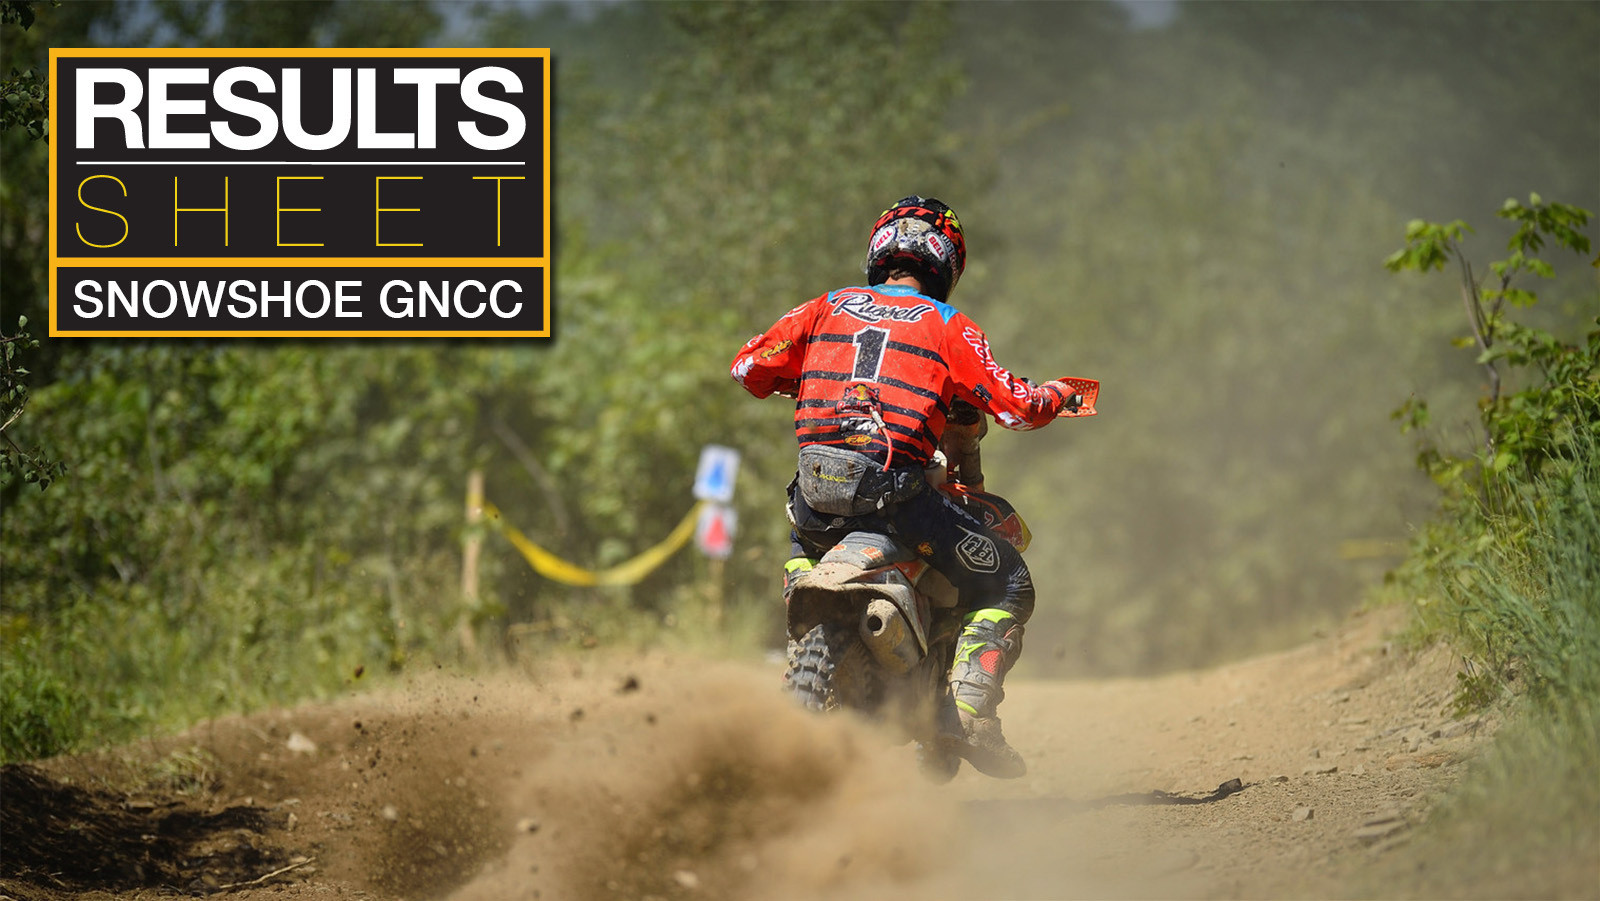 Results Sheet: Snowshoe GNCC